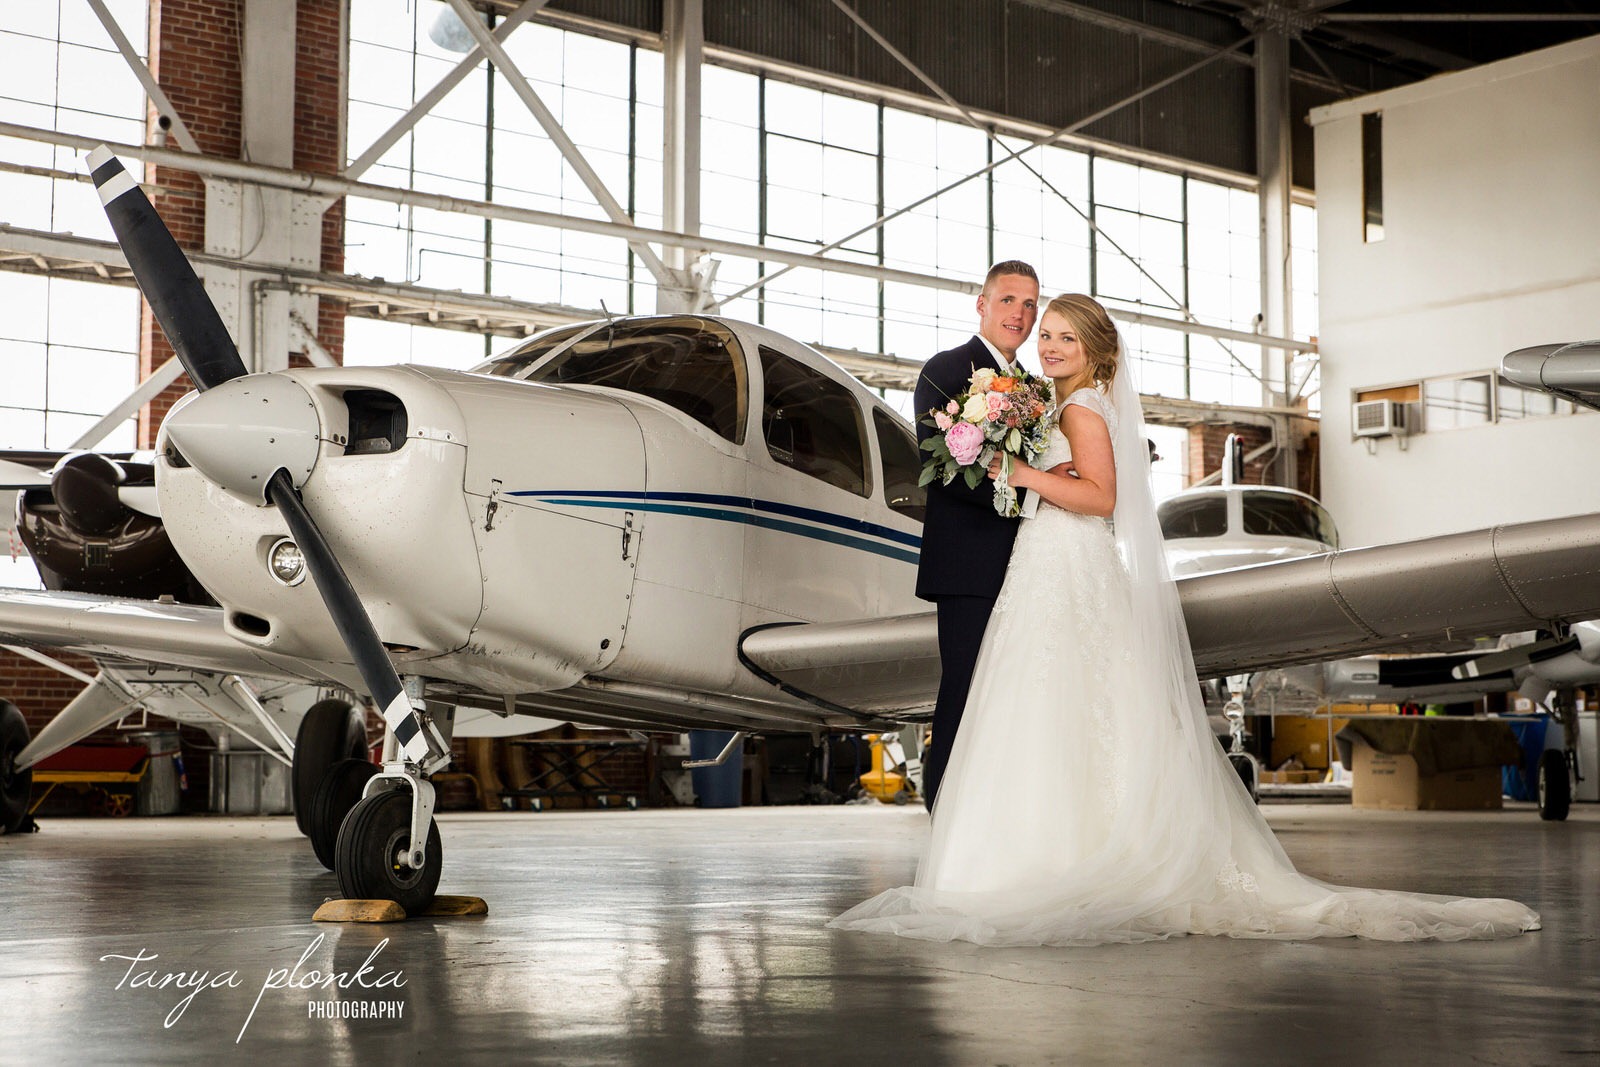 bride and groom pose in front of small airplane in airport hangar in Lethbridge